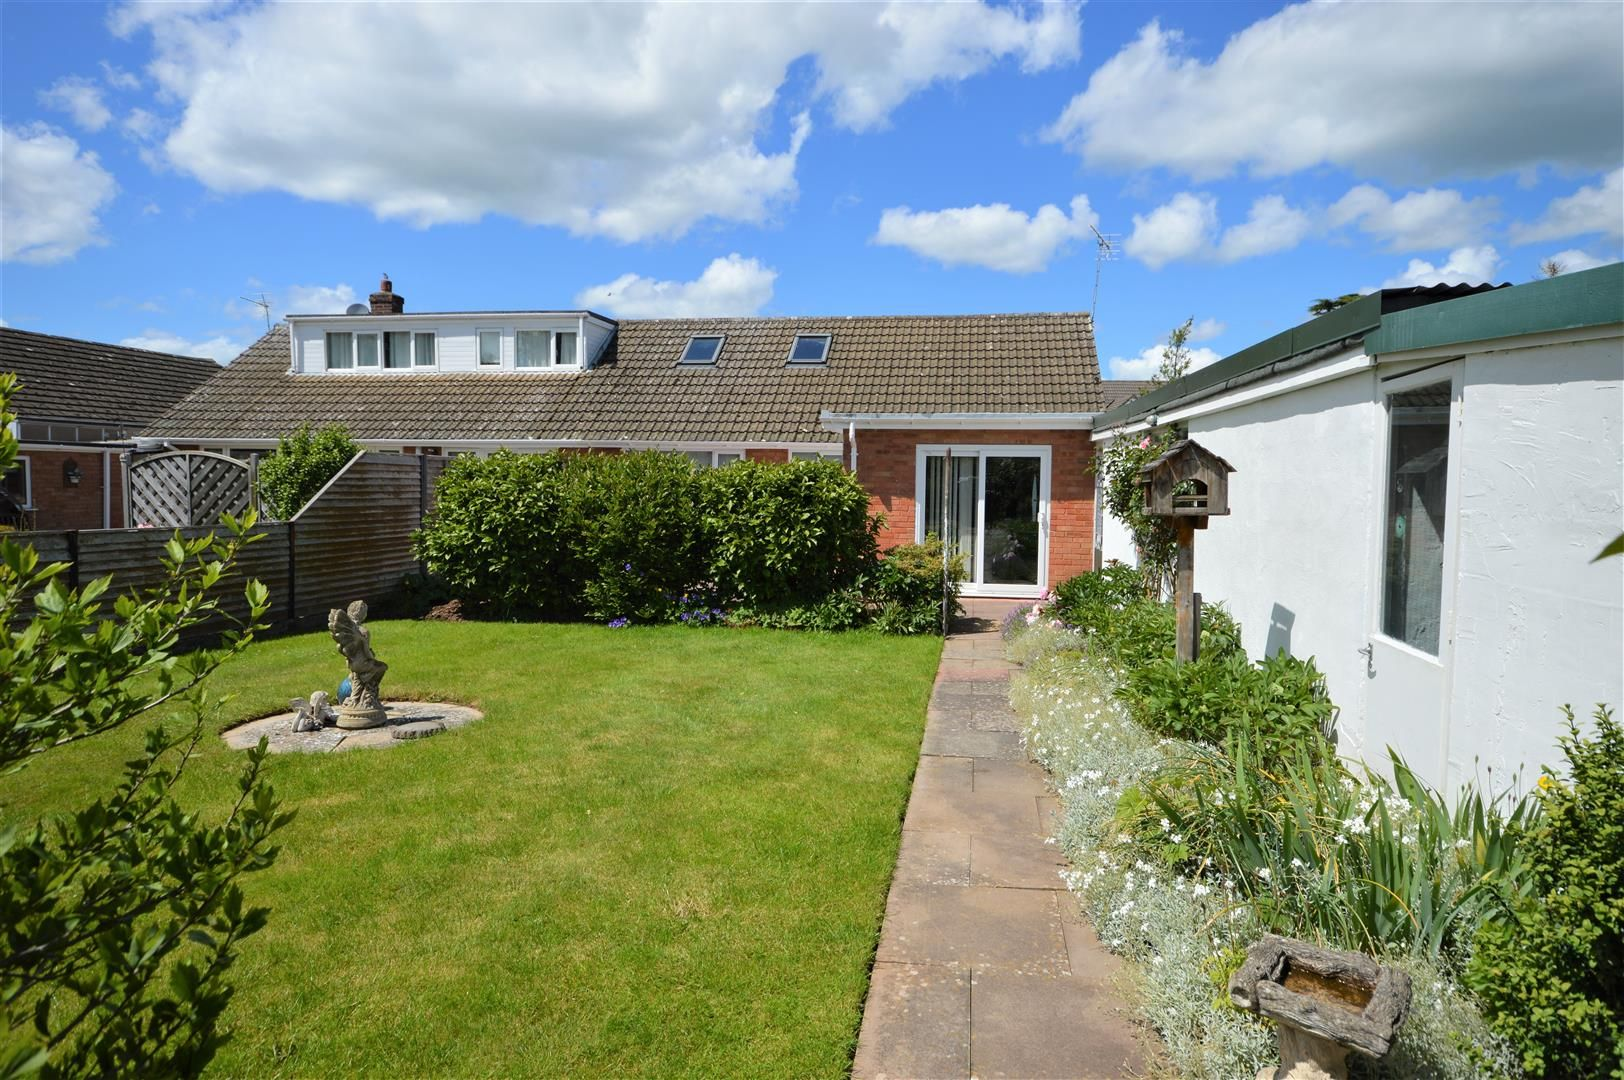 2 bed semi-detached-bungalow for sale in Leominster  - Property Image 12